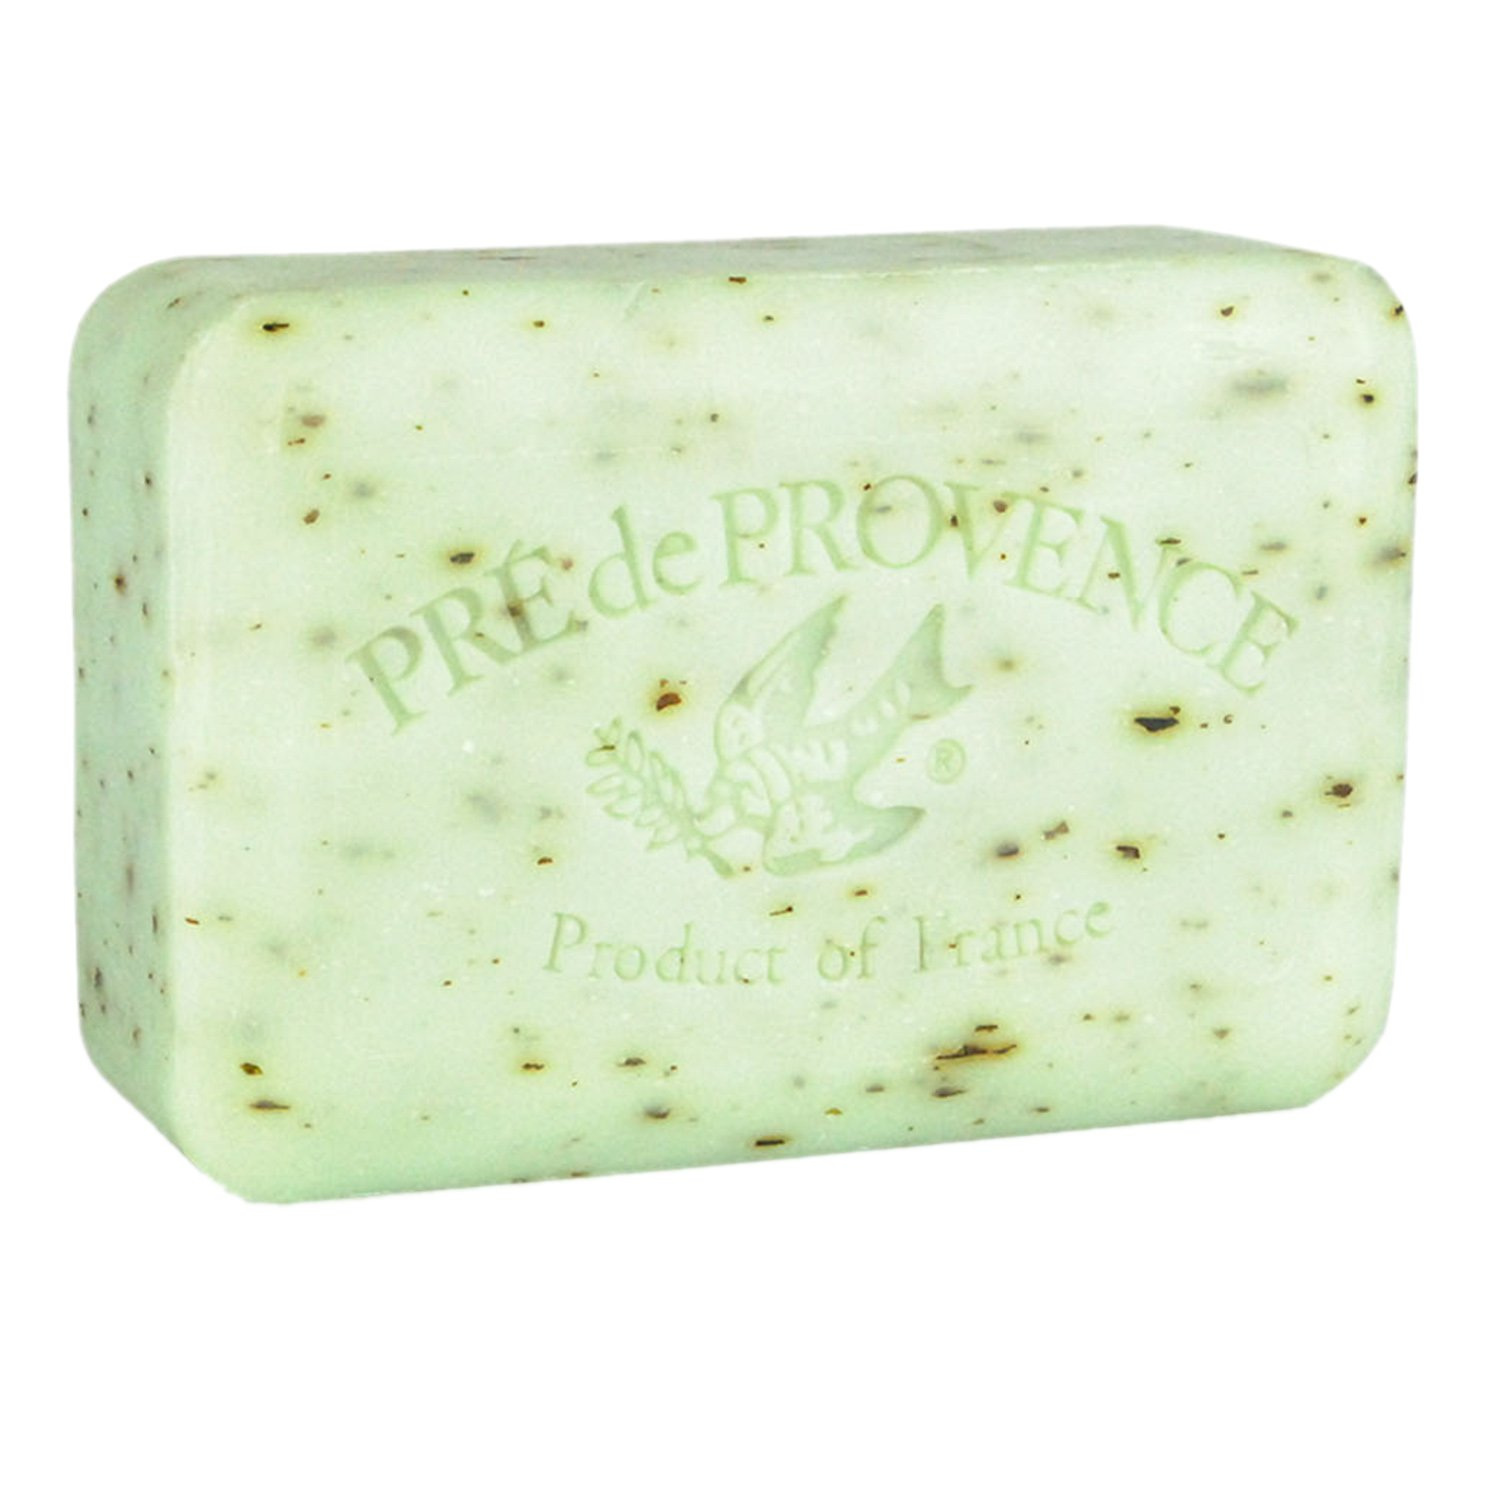 Pre de Provence Artisanal French Soap Bar Enriched with Shea Butter, Quad-Milled For A Smooth & Rich Lather (250 grams) - Rosemary Mint